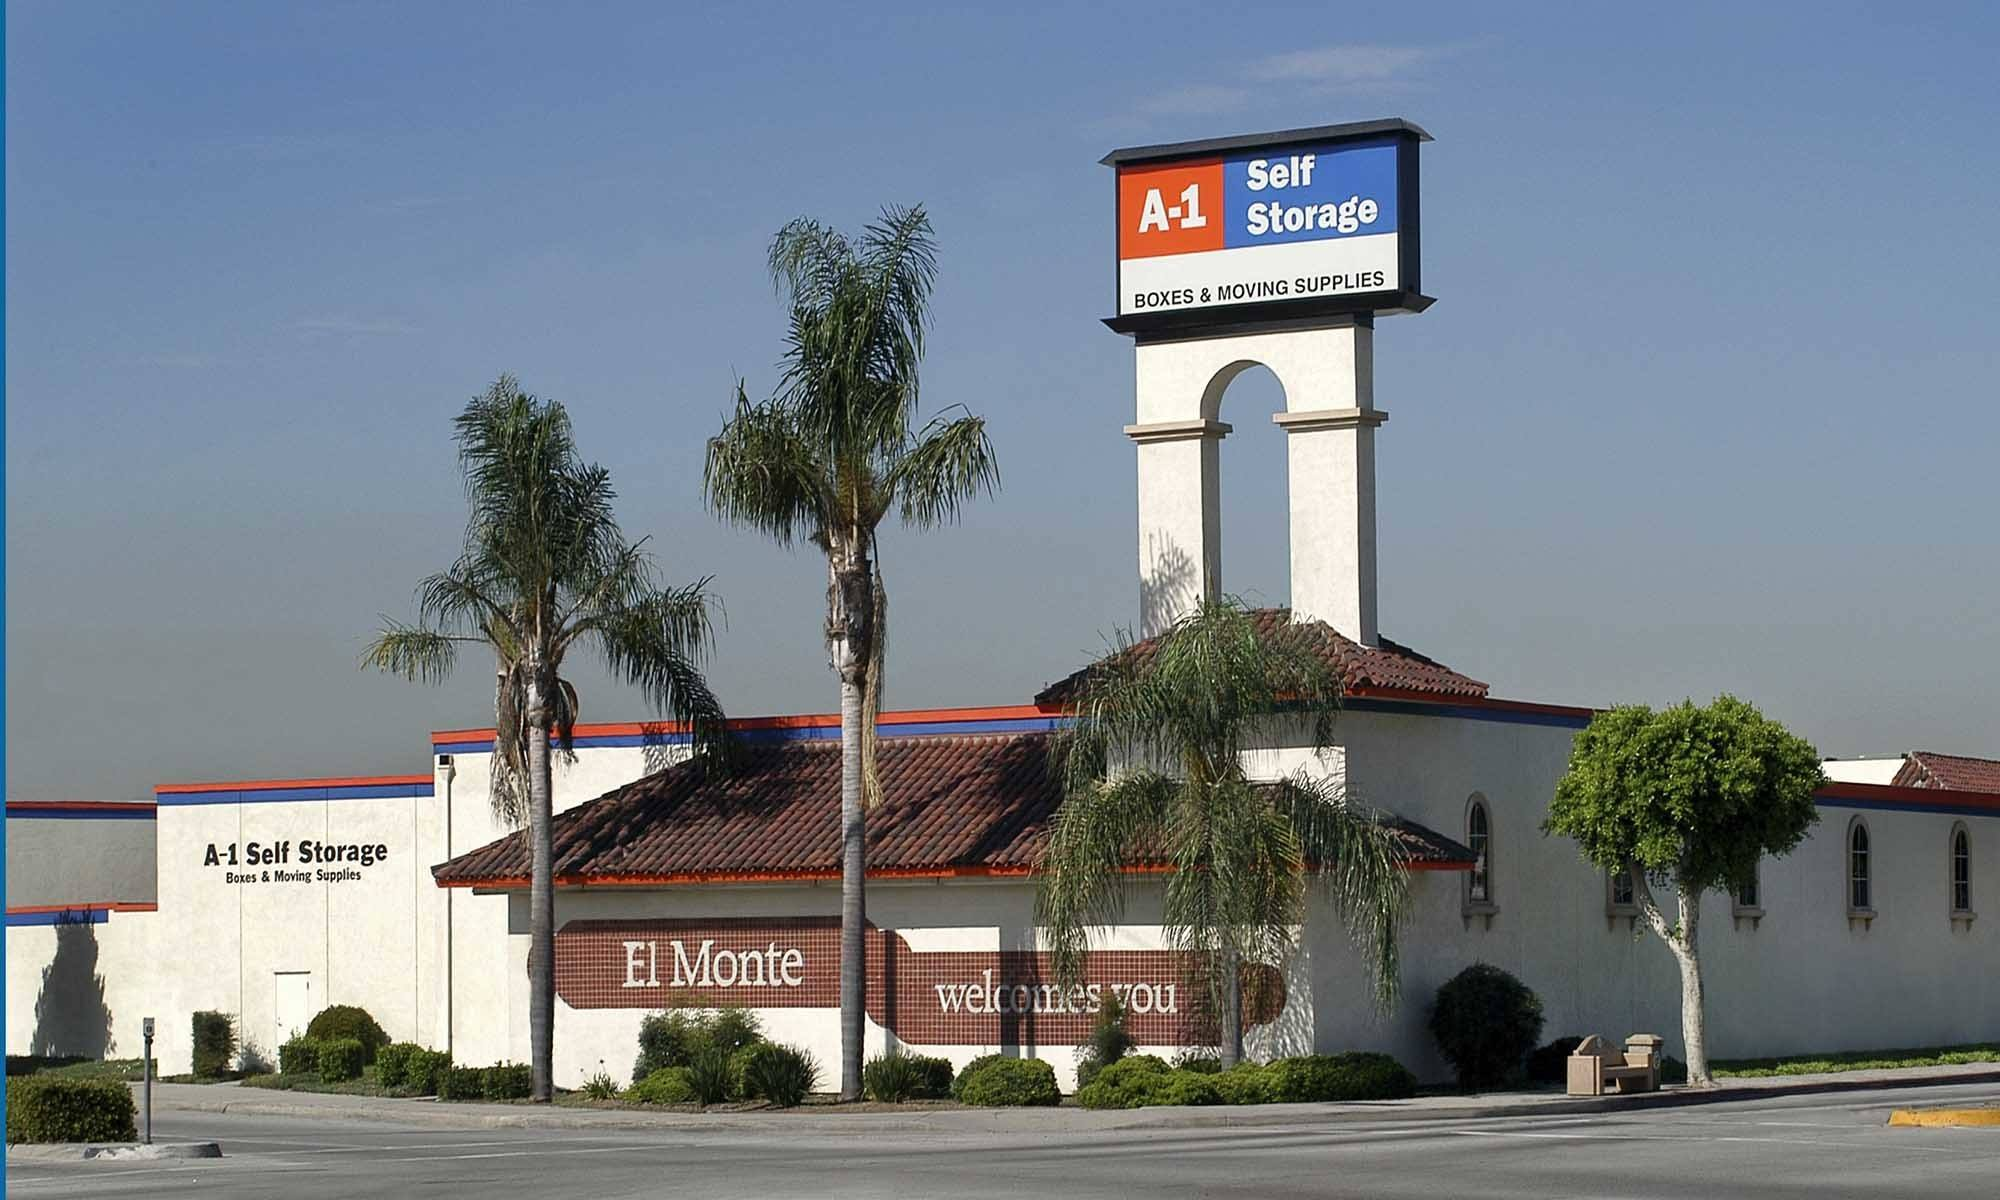 Self storage in El Monte CA